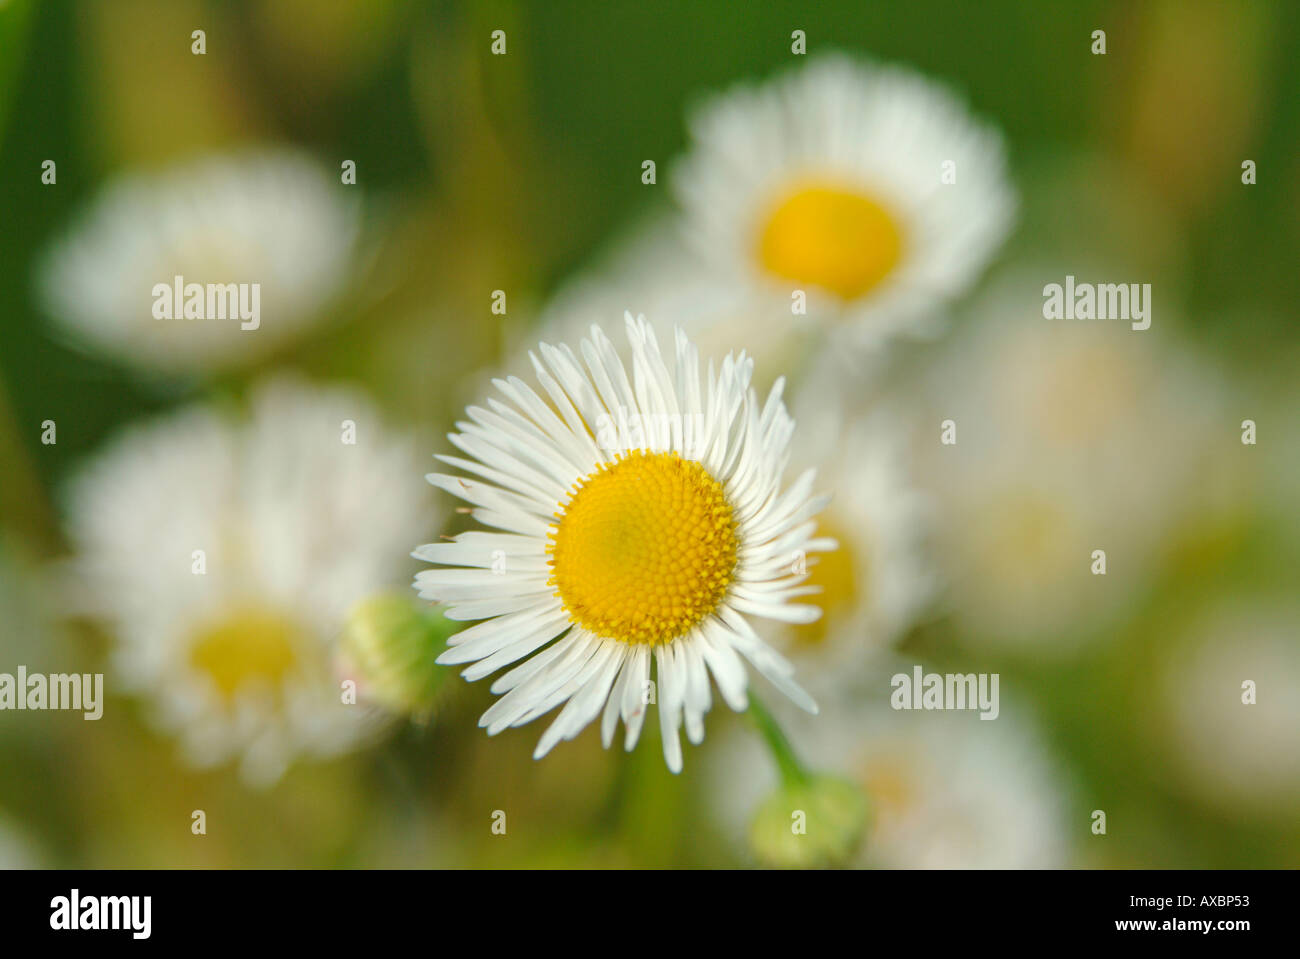 Bellis perennis l stock photos bellis perennis l stock images alamy close up of some flowers of daisy daisies bellis perennis l stock image izmirmasajfo